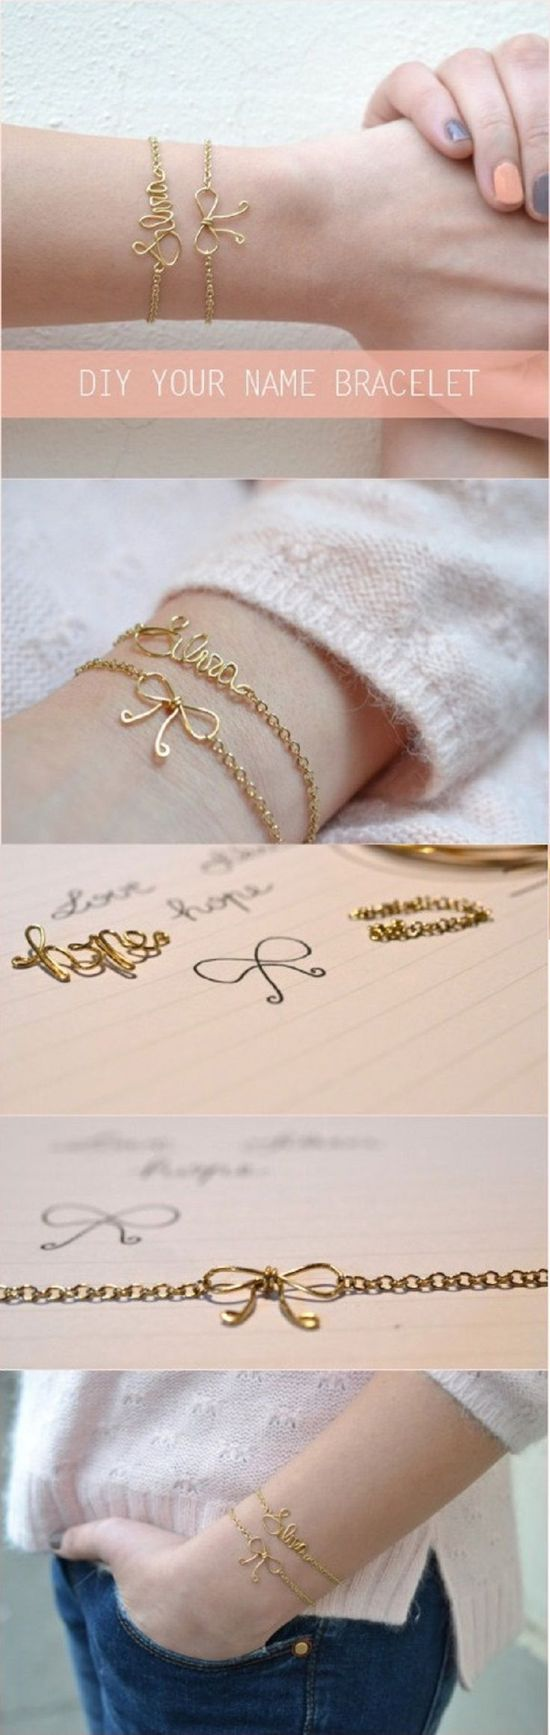 7 DIY Fashionable Bracelet